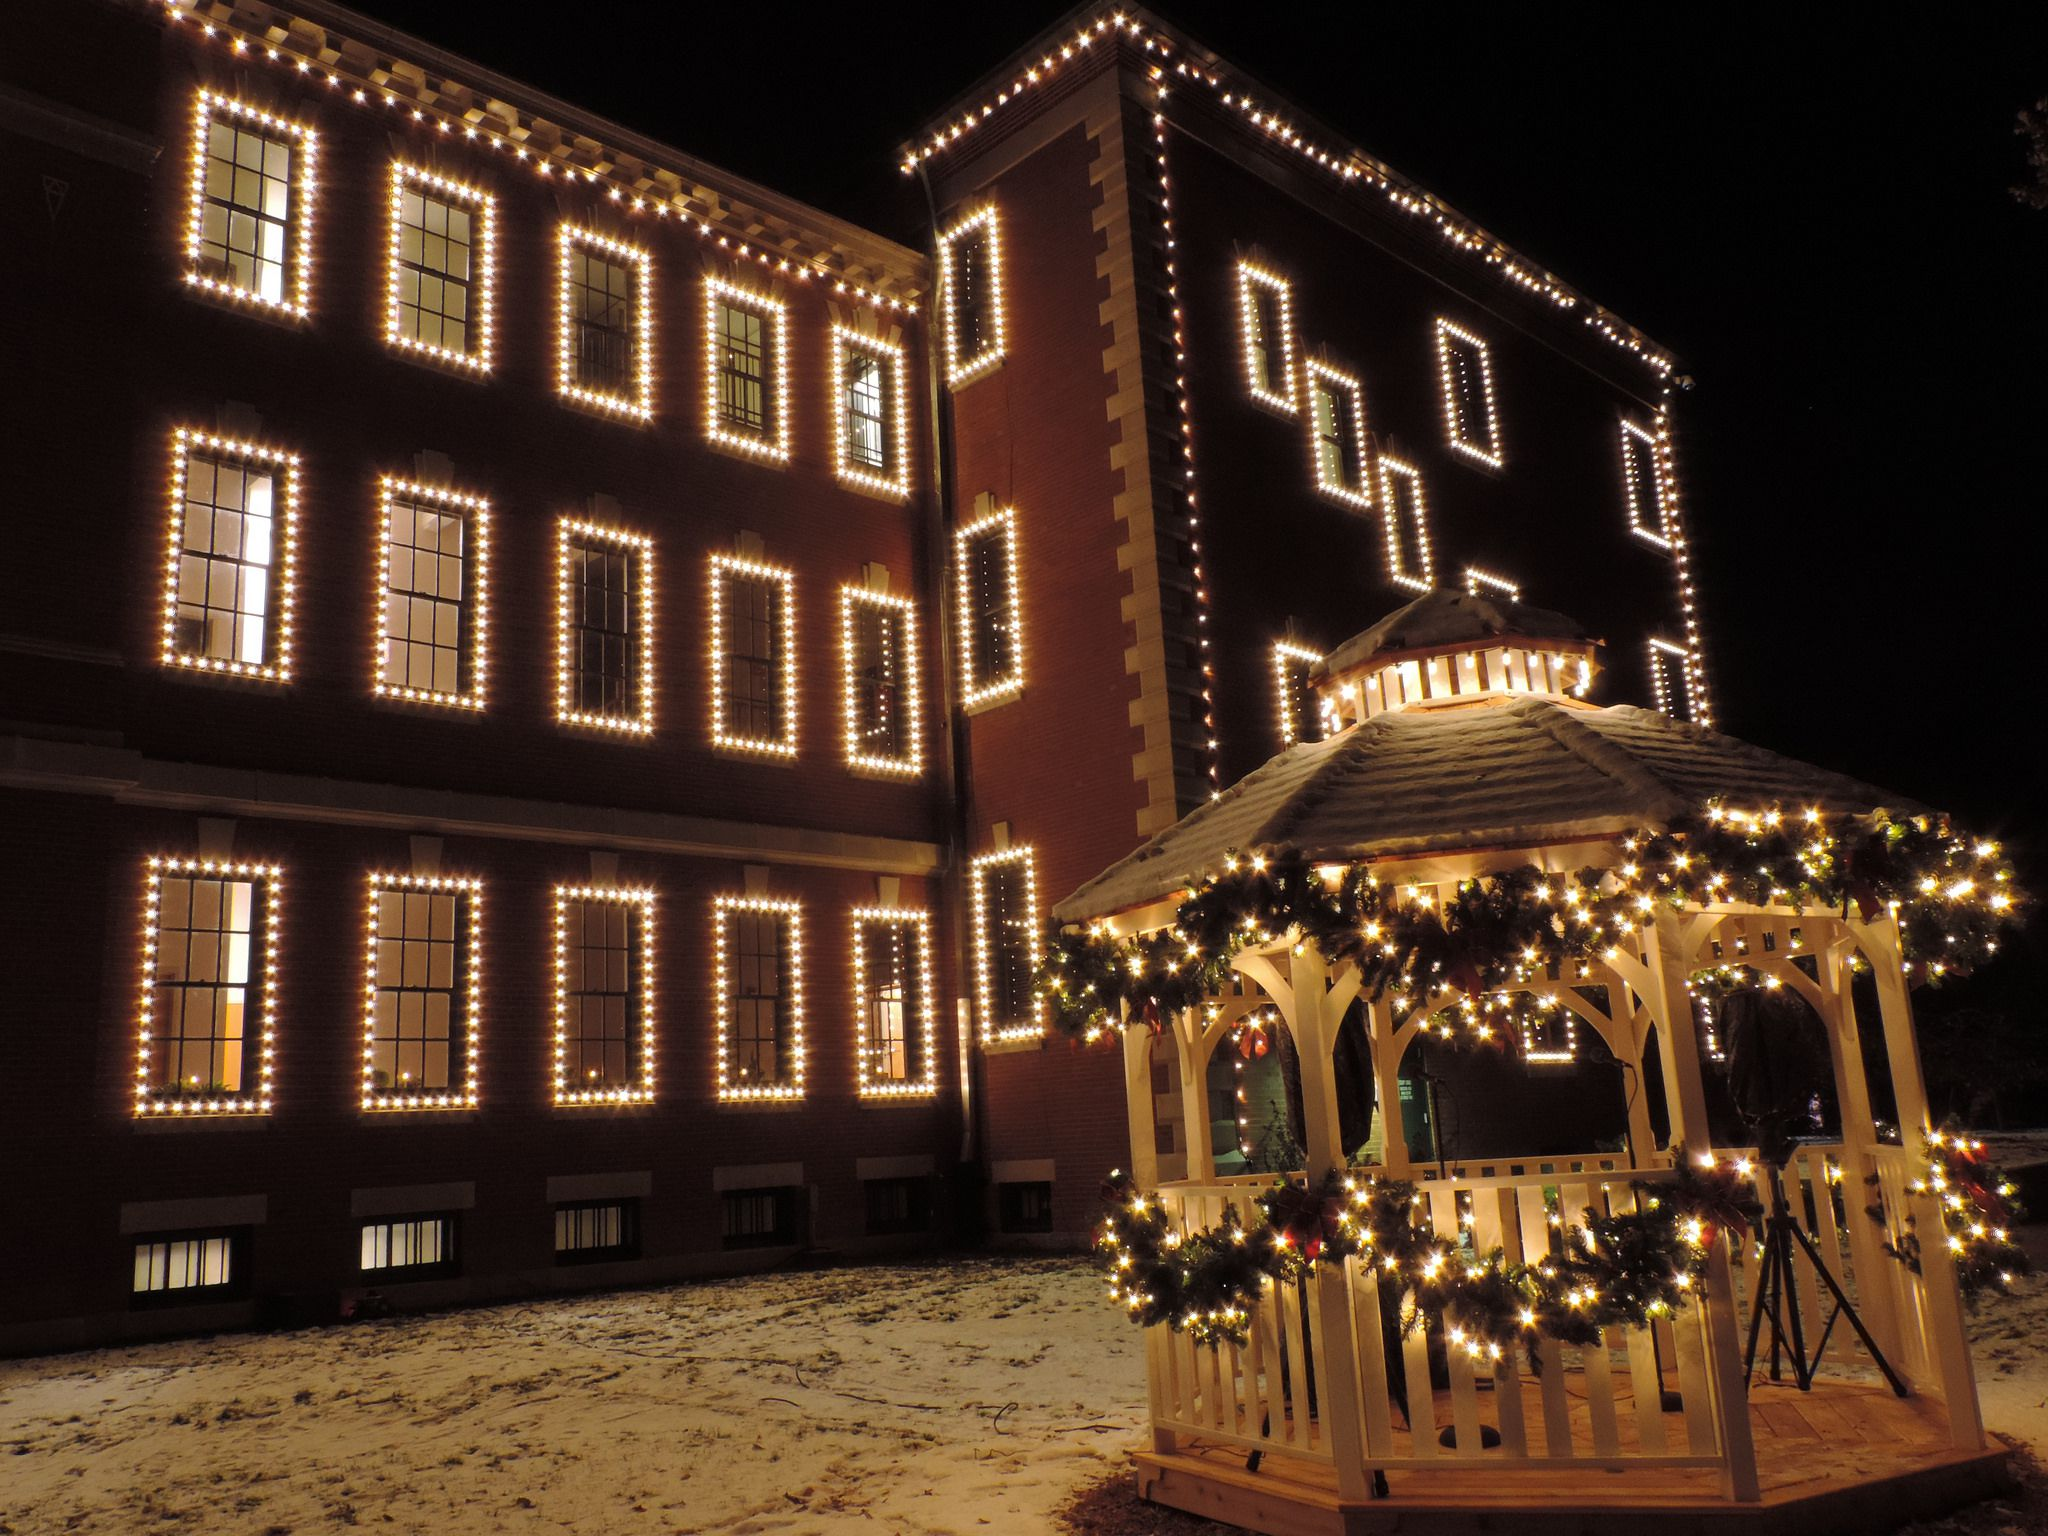 the best christmas light displays in st louis - Indoor Decorations Christmas Village